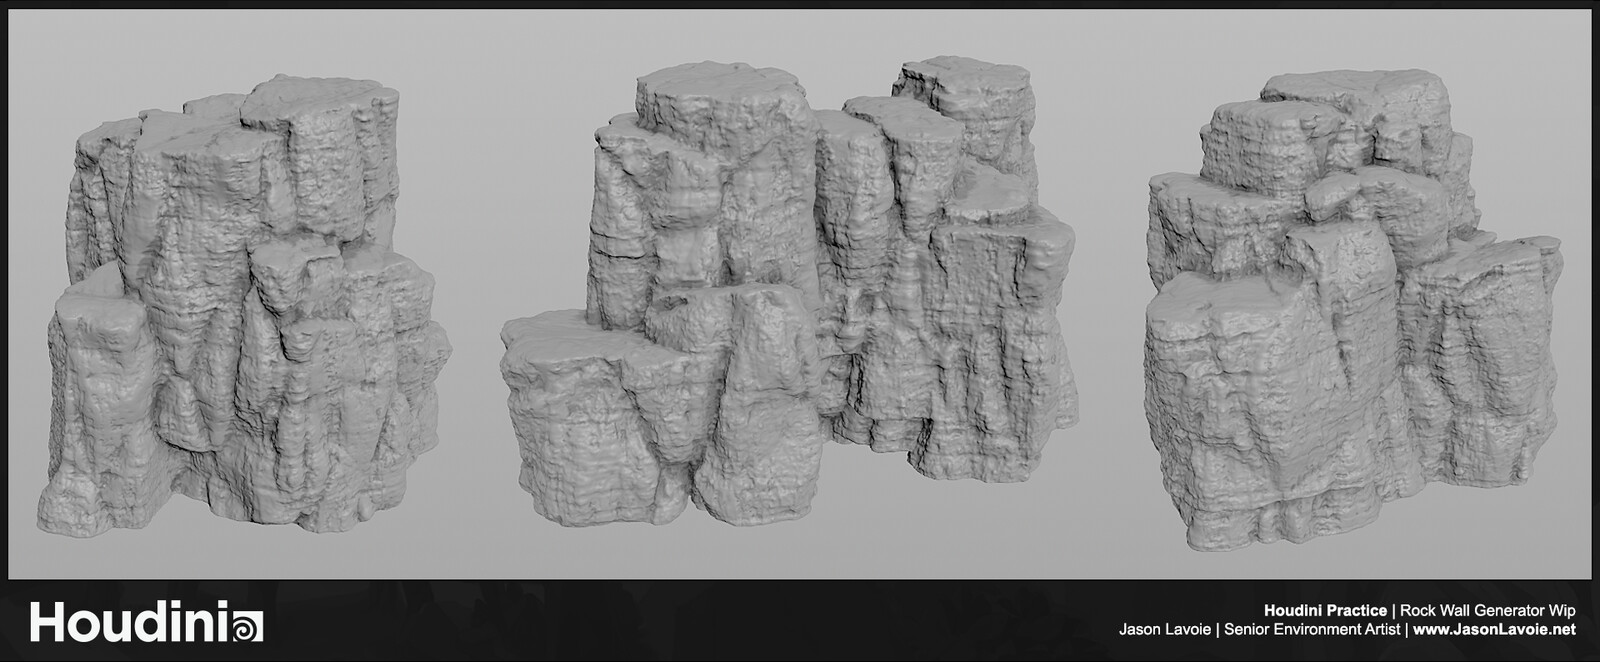 First Pass on a Houdini Rock Wall Generator - Not happy with the results, but learning the process!